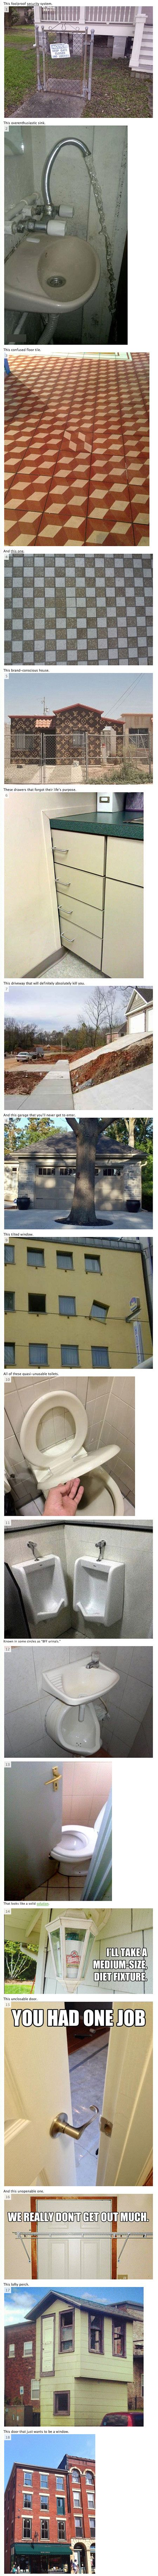 Here are some weird and crazy construction fails that will leave you puzzled.